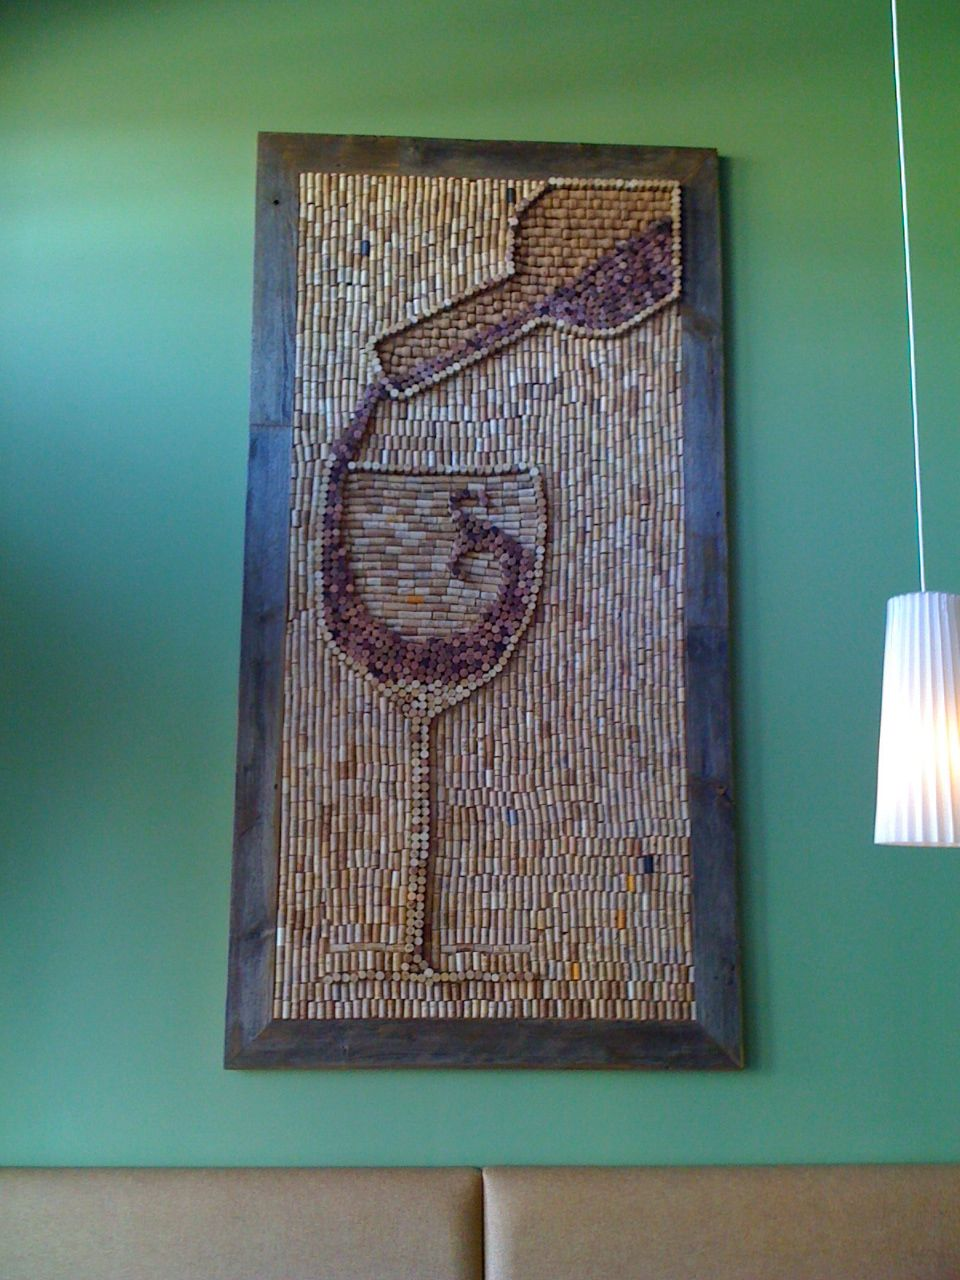 Wine Cork Art - I don't think I'll ever have enough corks to do this, but it is amazing!